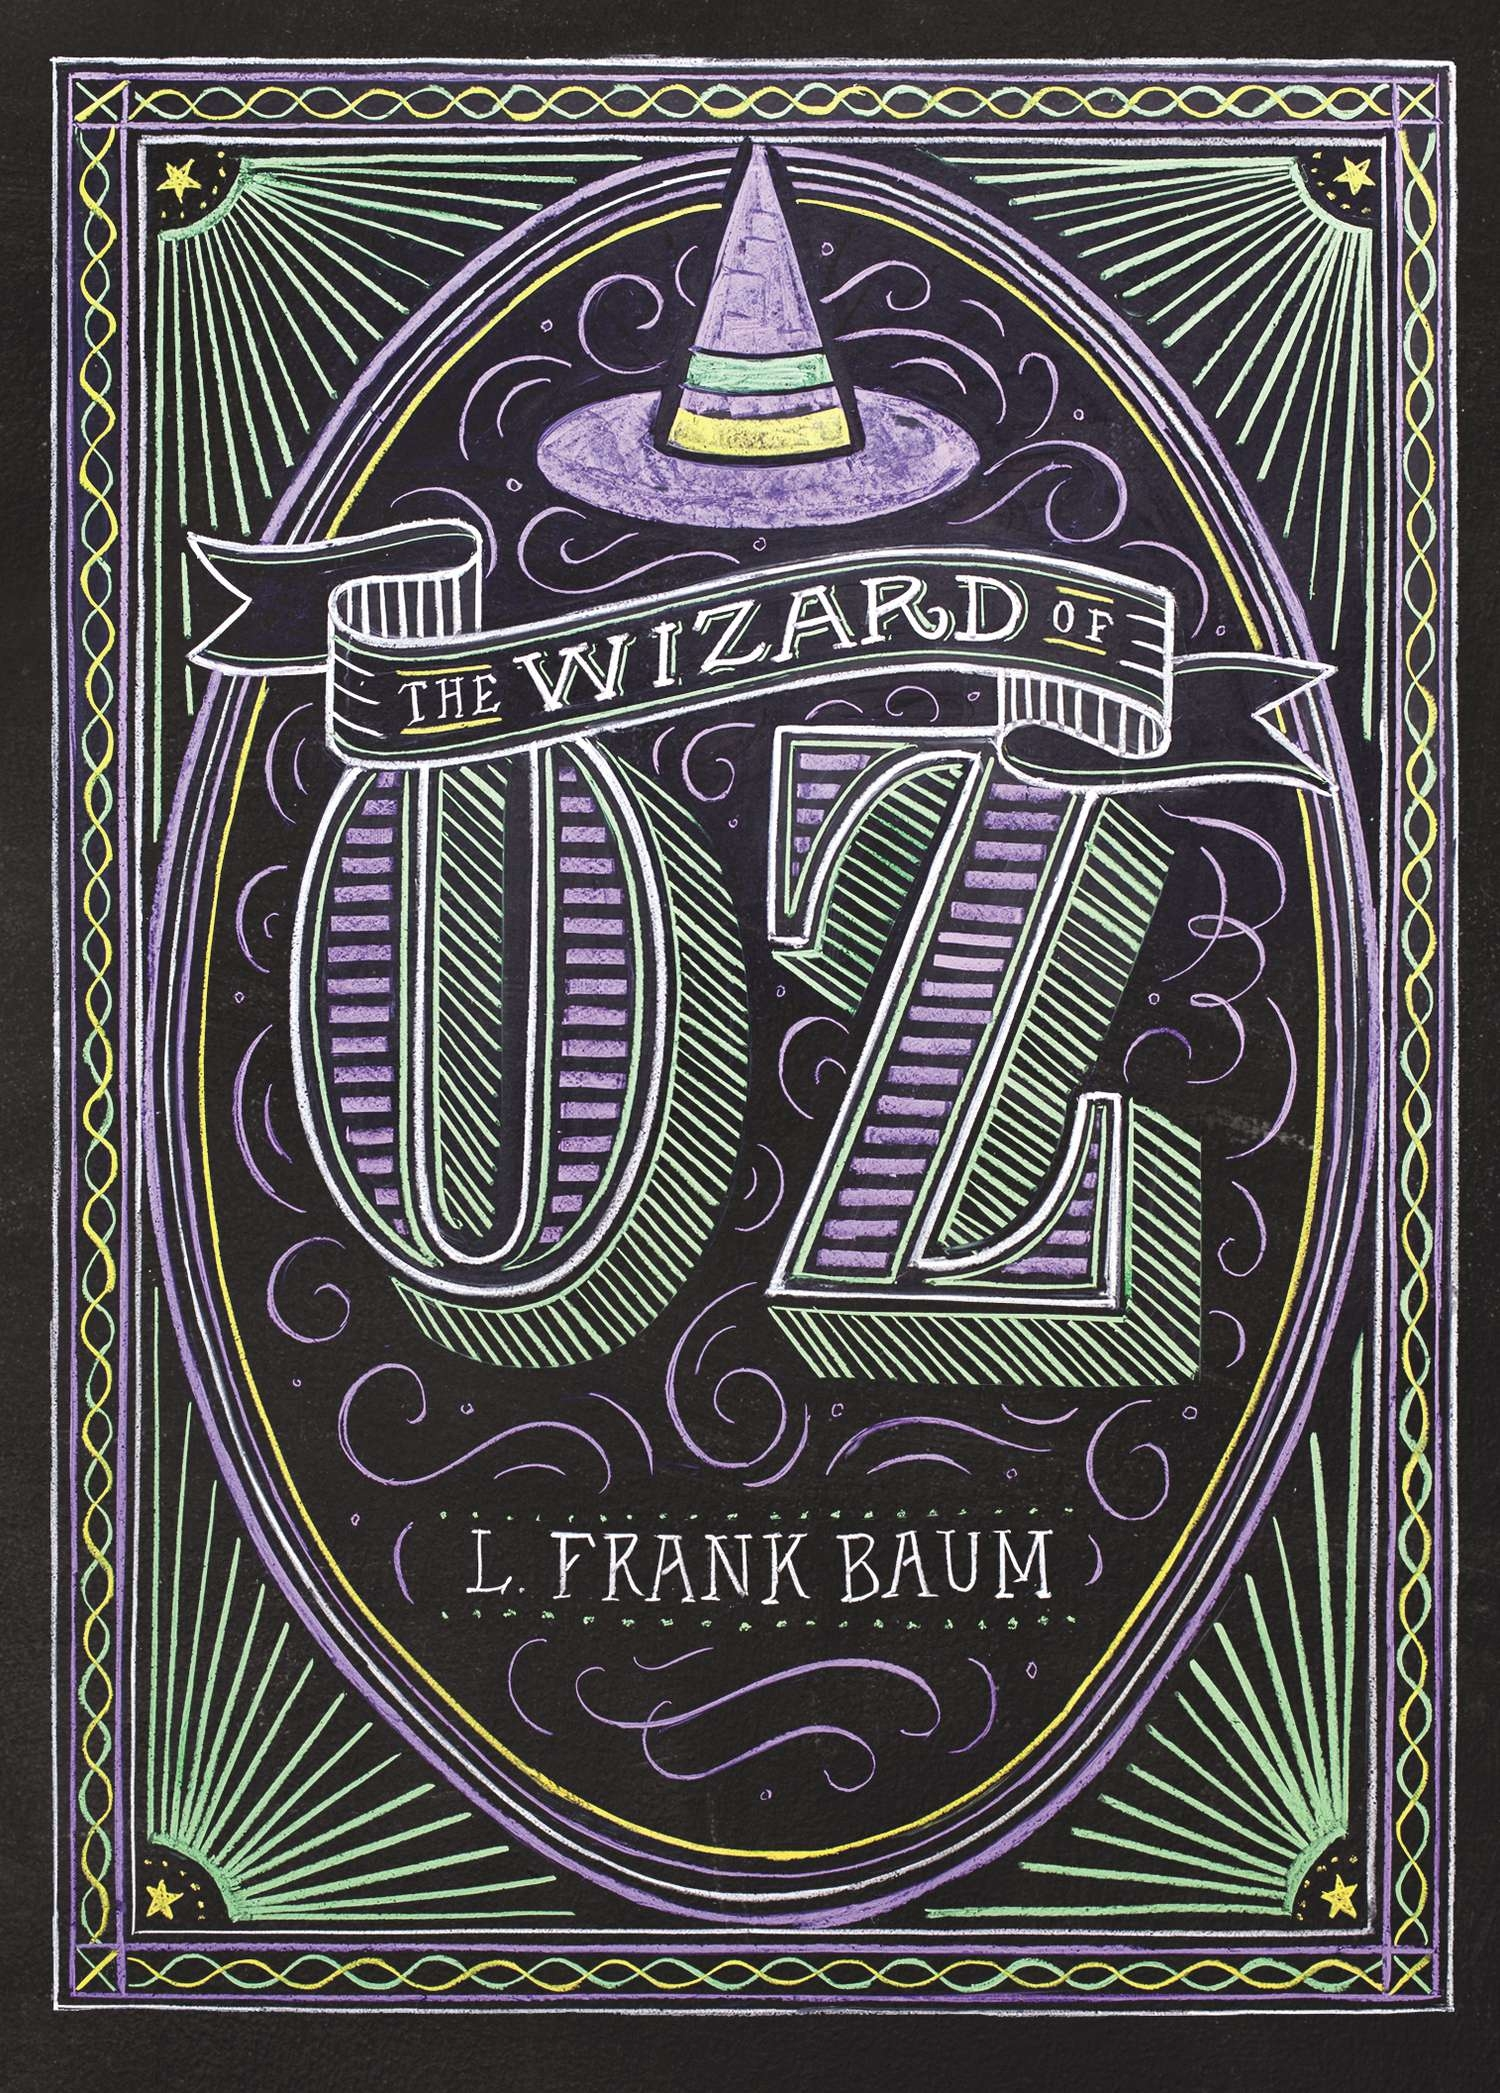 The Wizard of Oz by L. Frank Baum, ISBN: 9780142427507